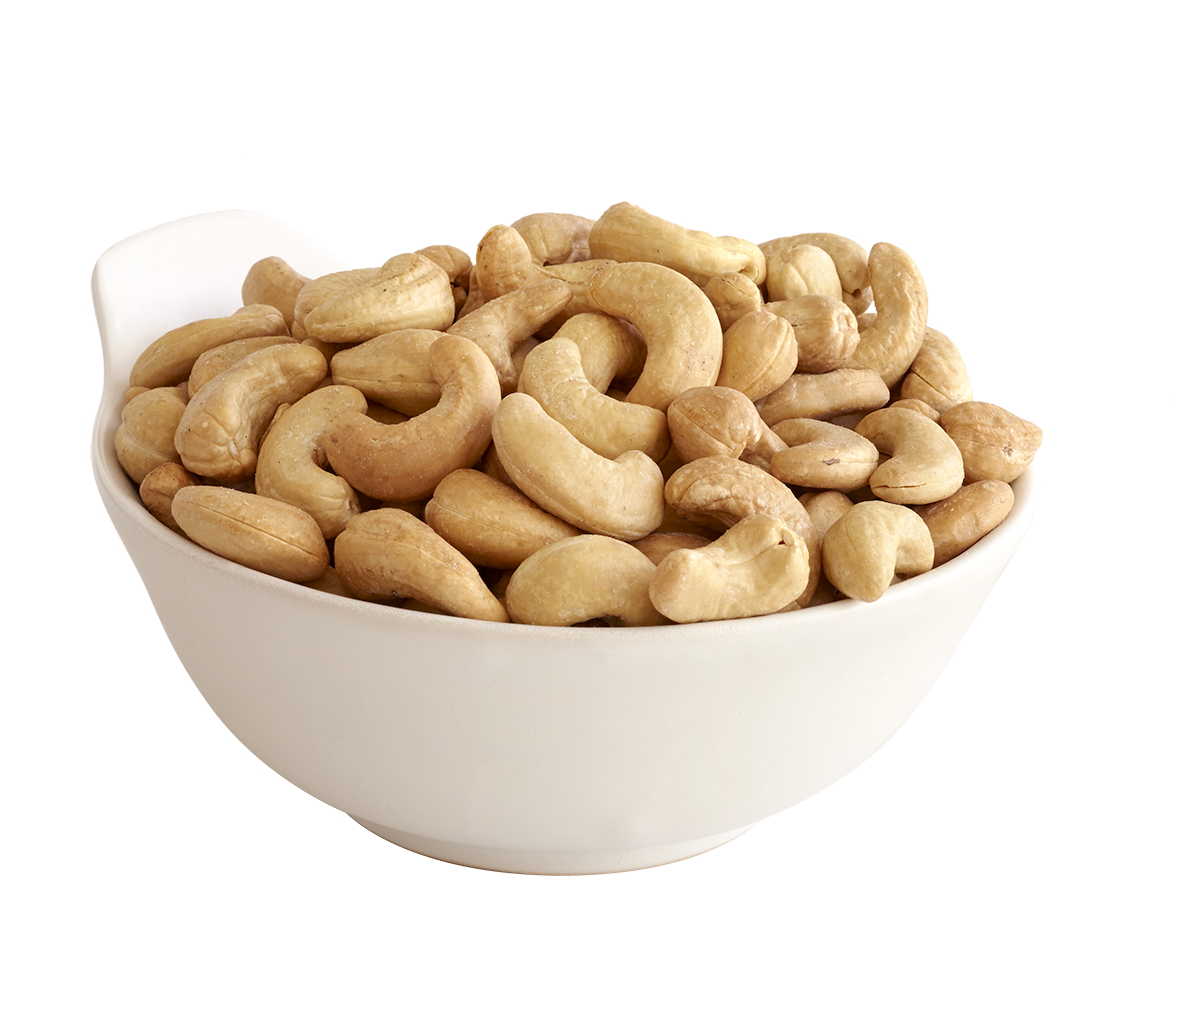 Bowl of mashed potatoes png. Cashew images free download